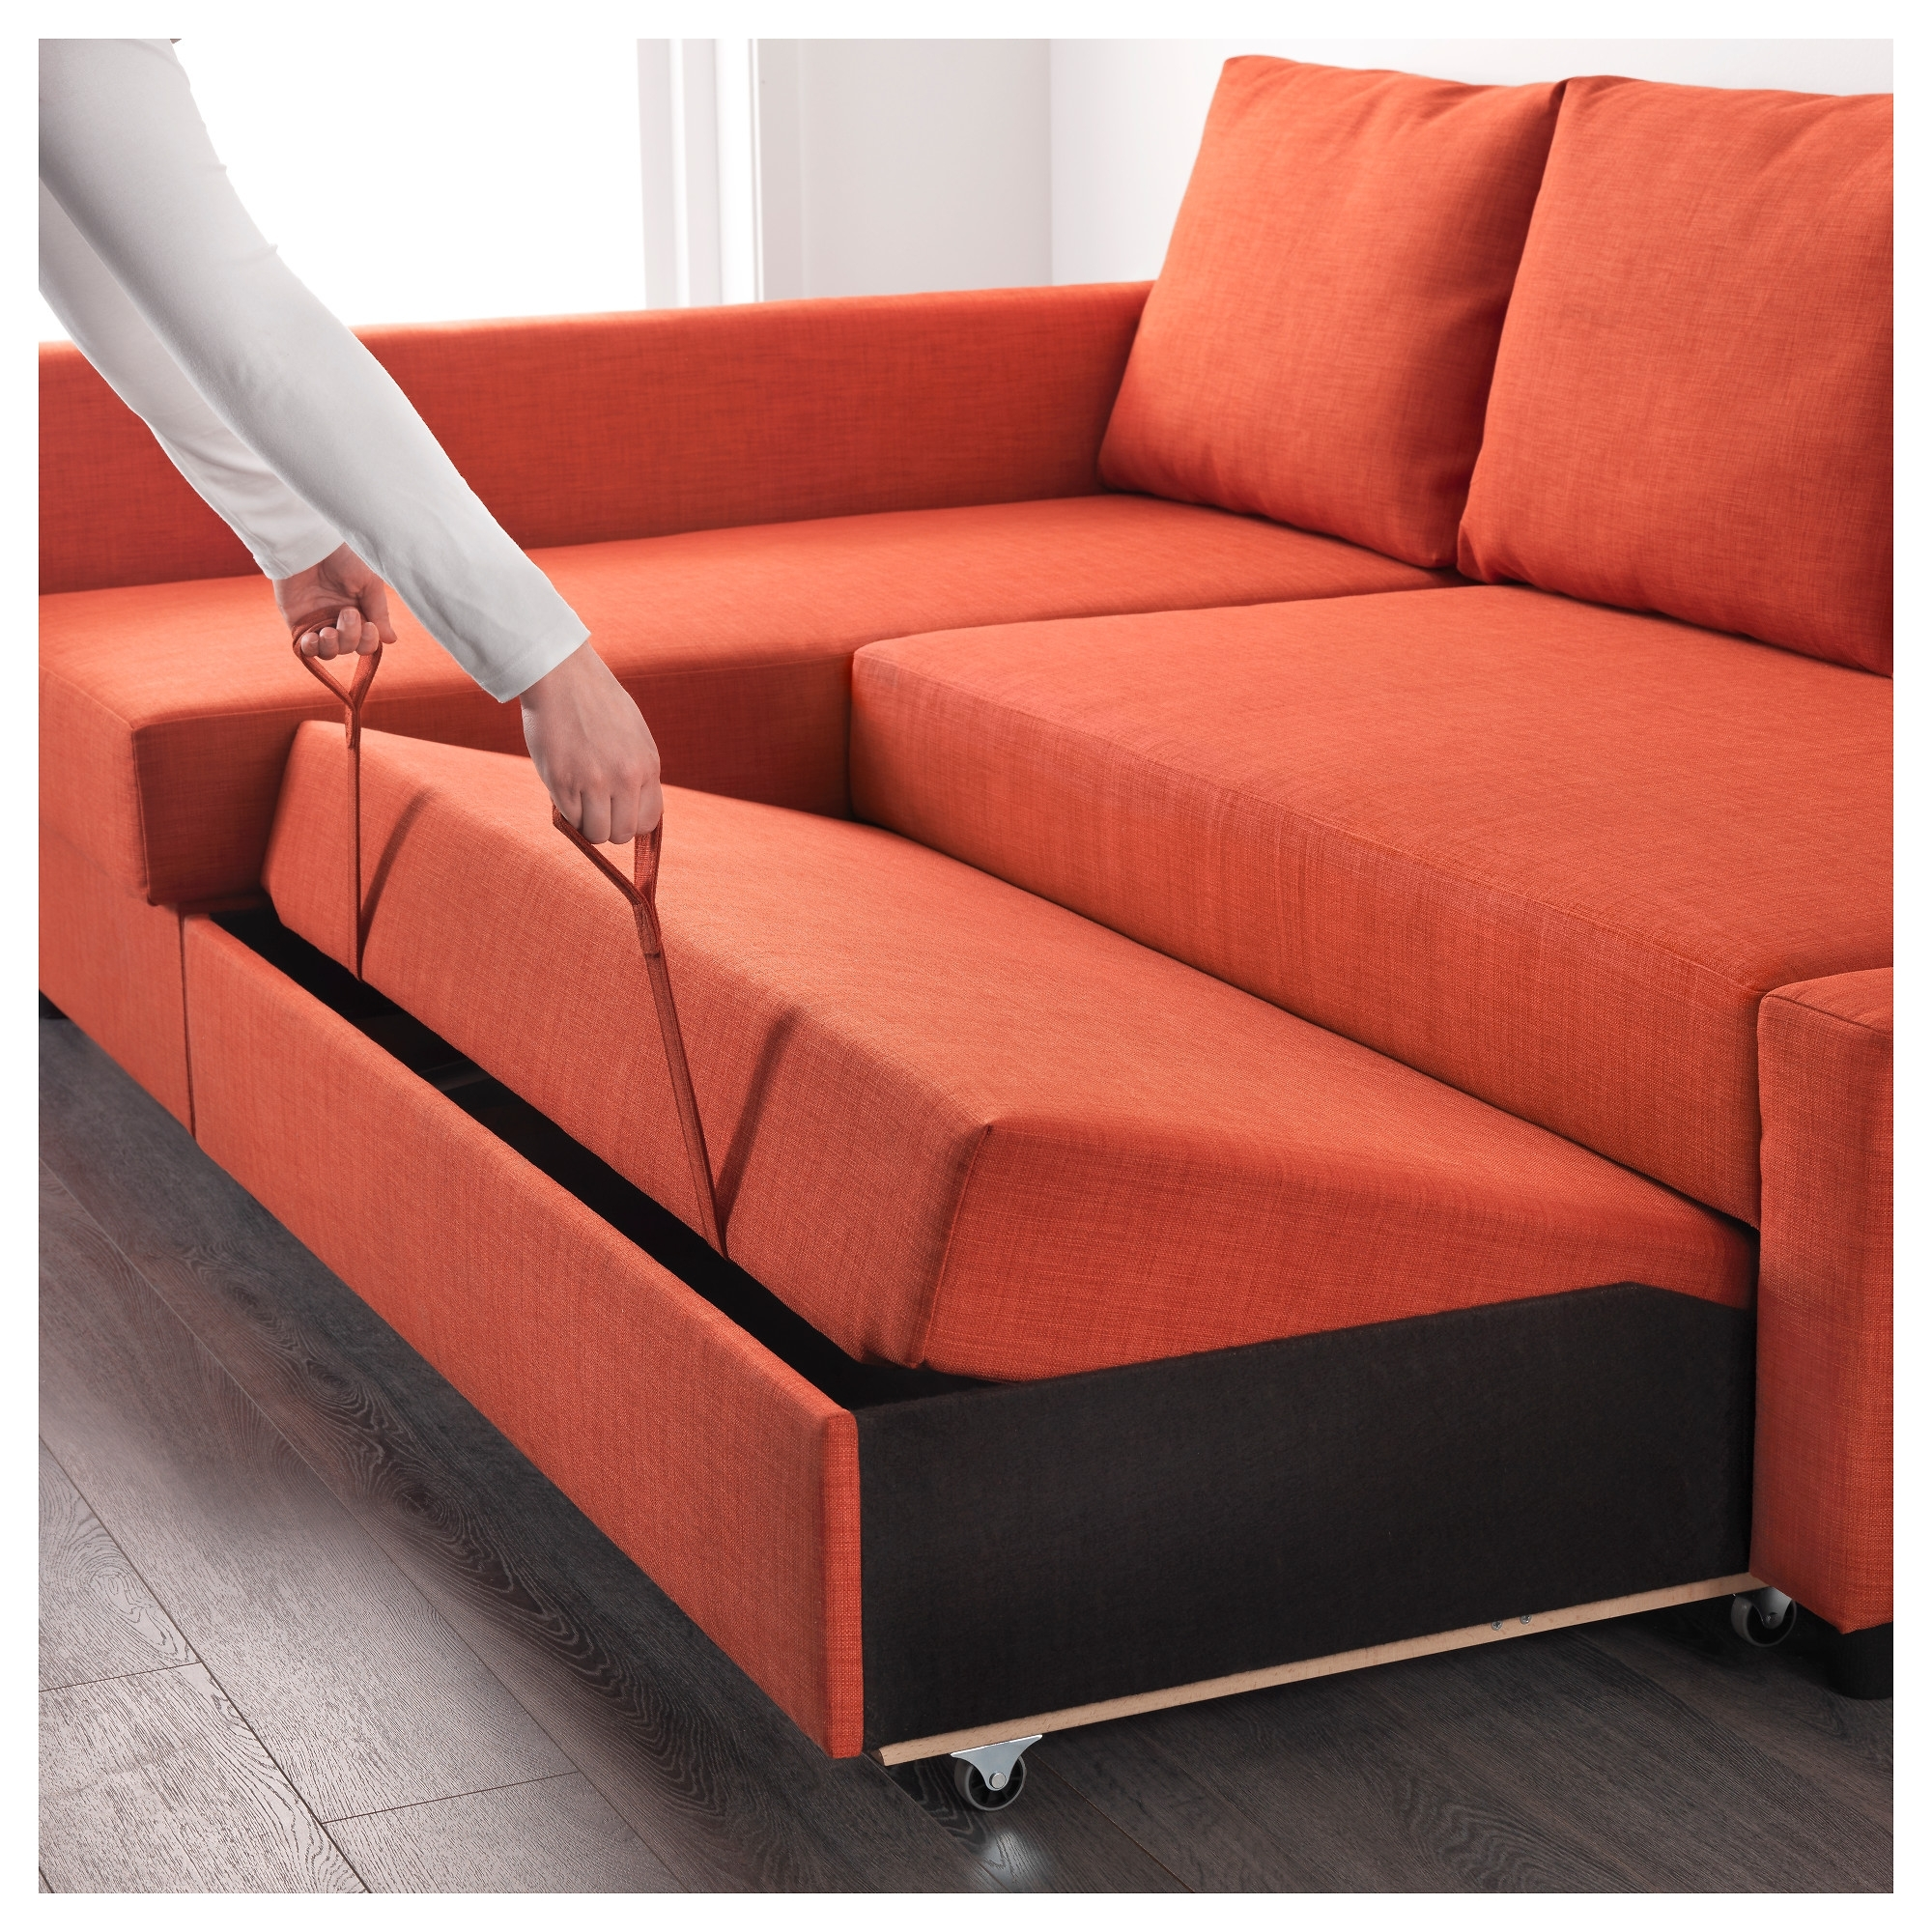 Friheten Corner Sofa Bed With Storage Skiftebo Dark Orange – Ikea In Storage Sofas (View 8 of 10)